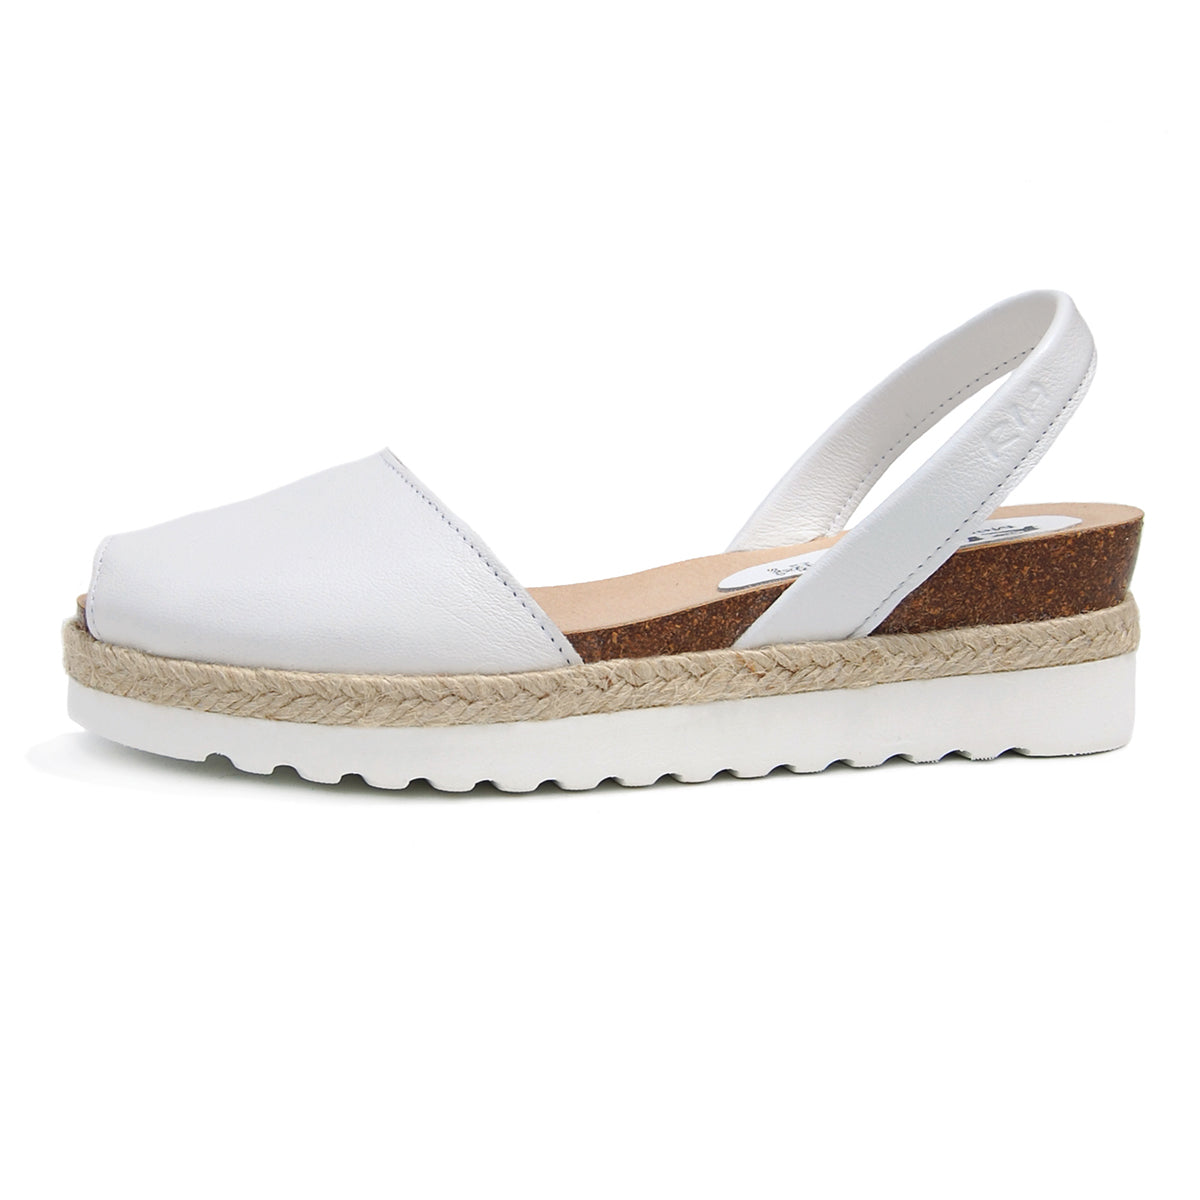 Cala Avarcas Menorcan Sandals in White